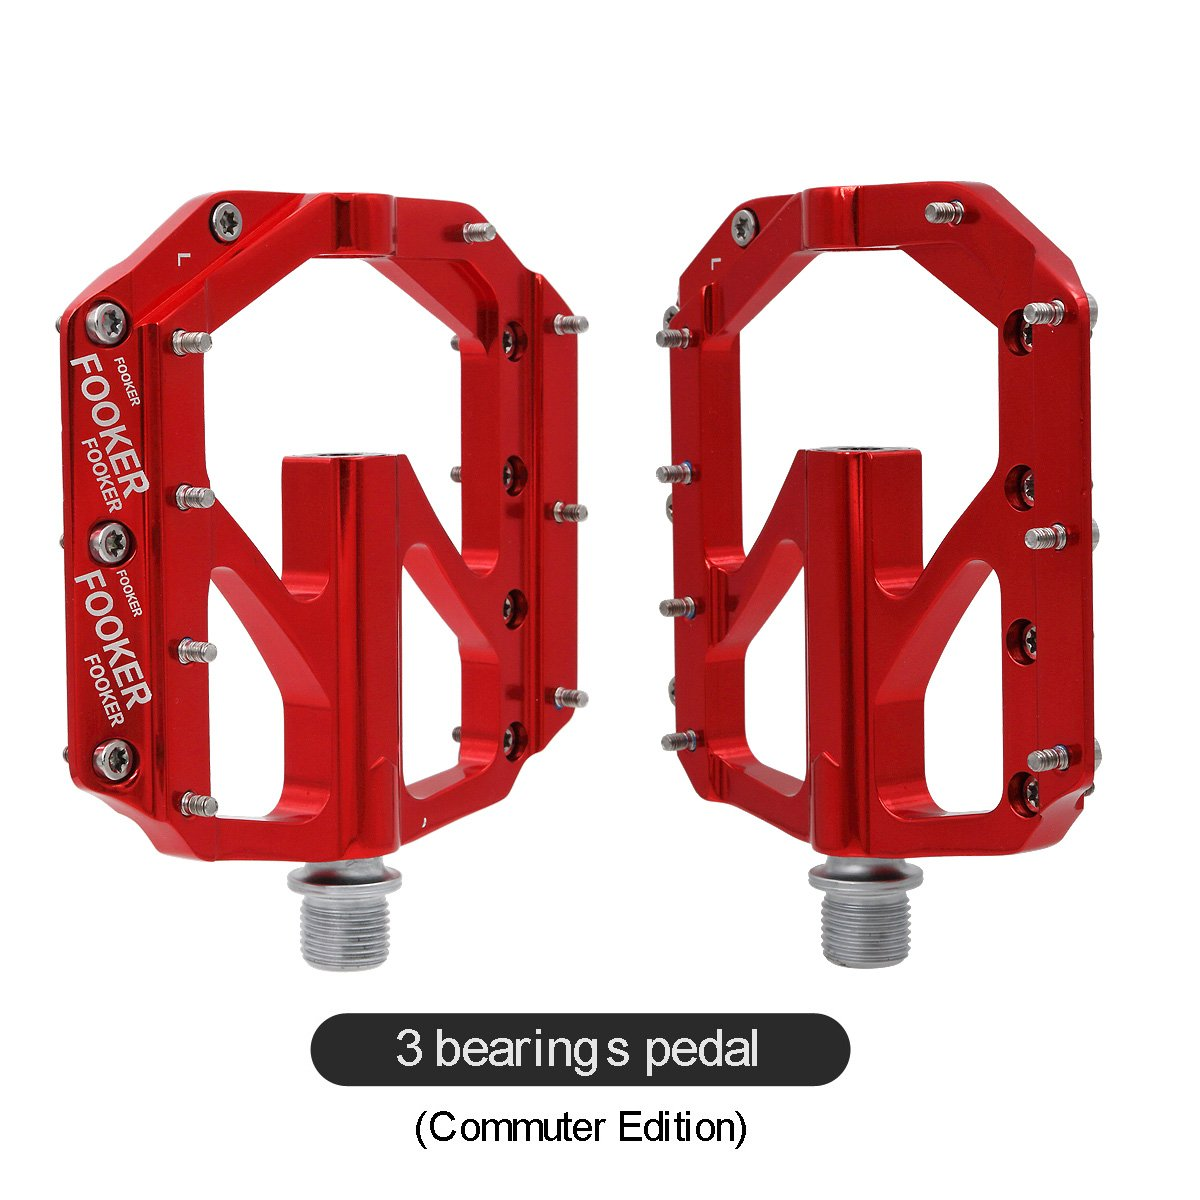 FOOKER Bike Pedals Non-Slip Aluminum Alloy MTB Mountain Bike Pedals 3 Bearing 9/16'' for Road BMX MTB Fixie Bikes by FOOKER (Image #4)